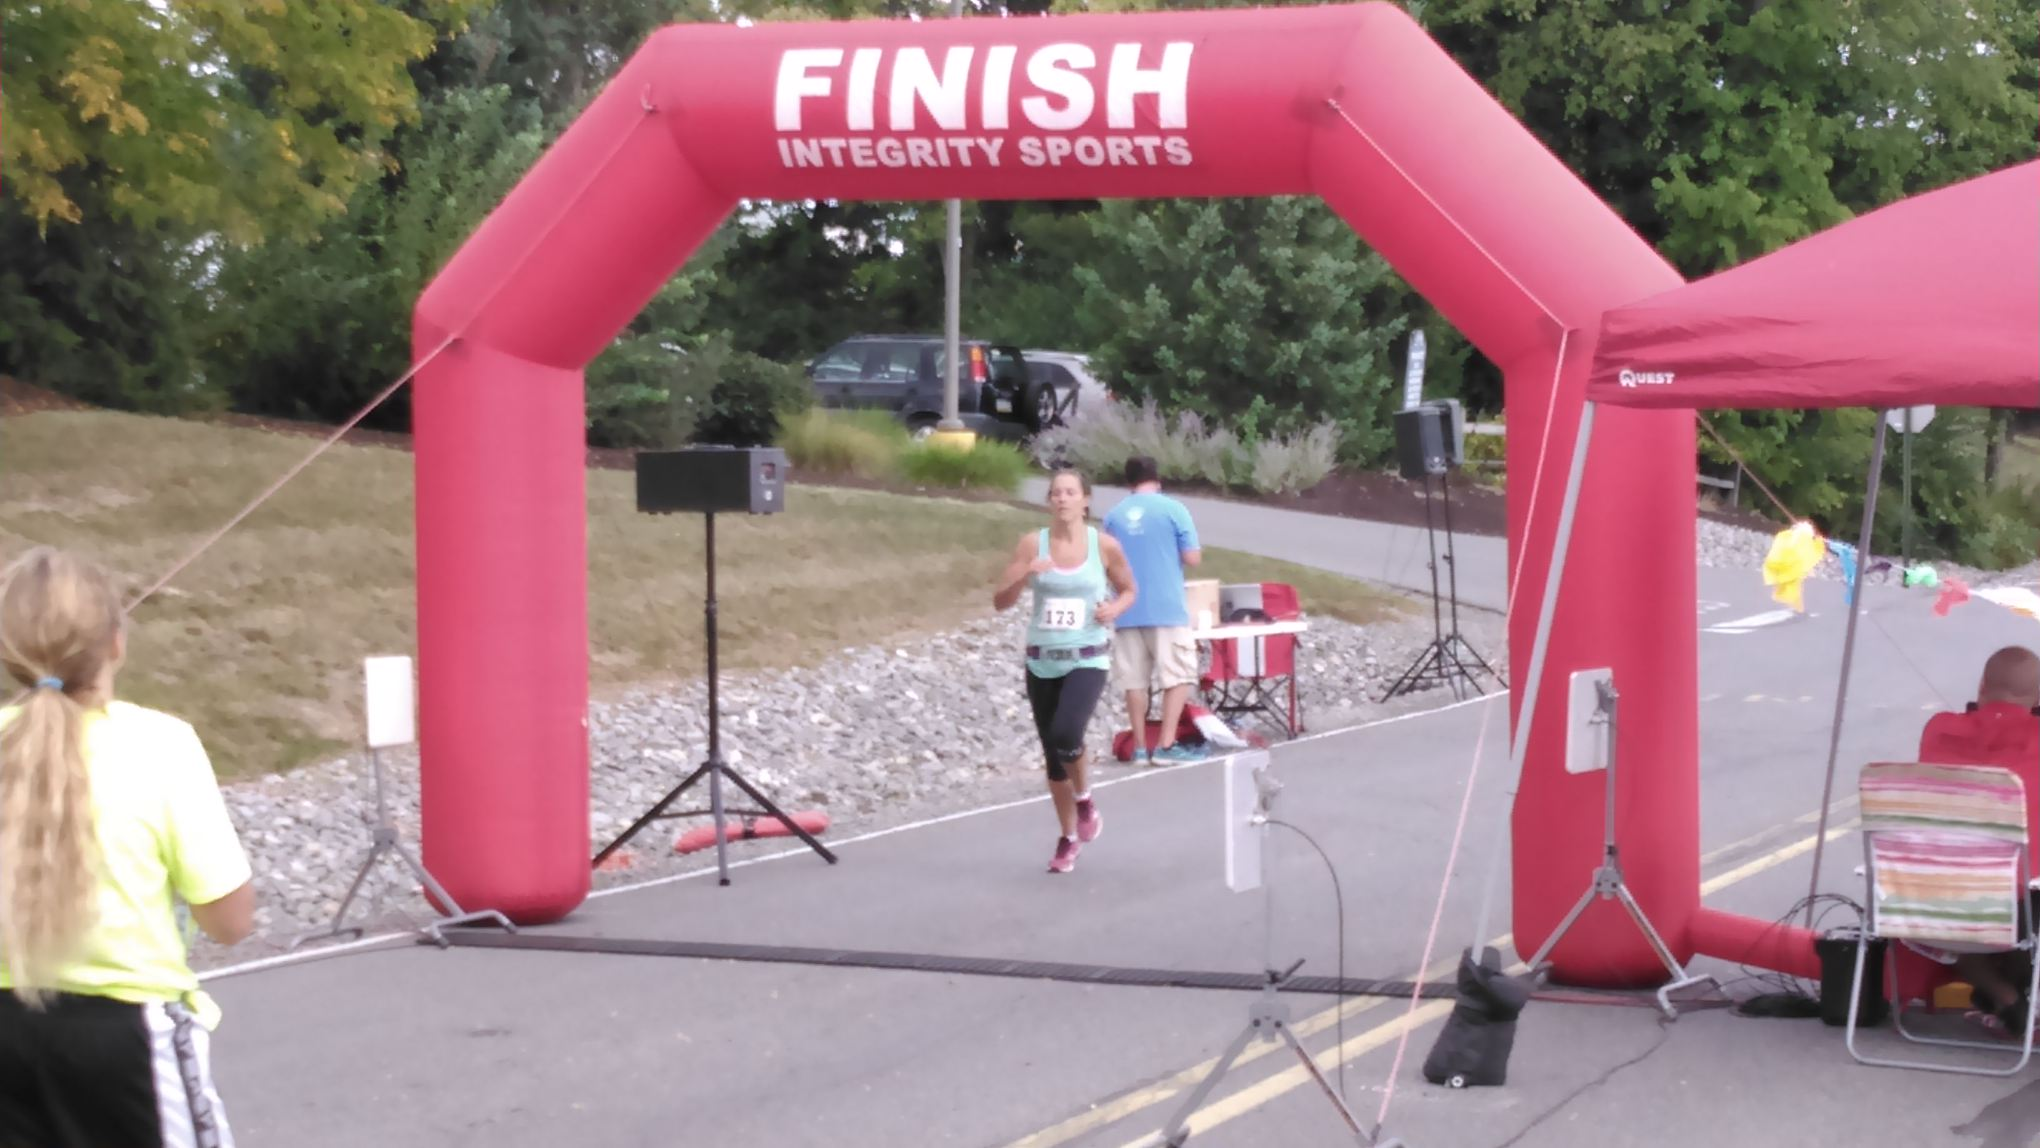 Ashley completing her first race second in her age category